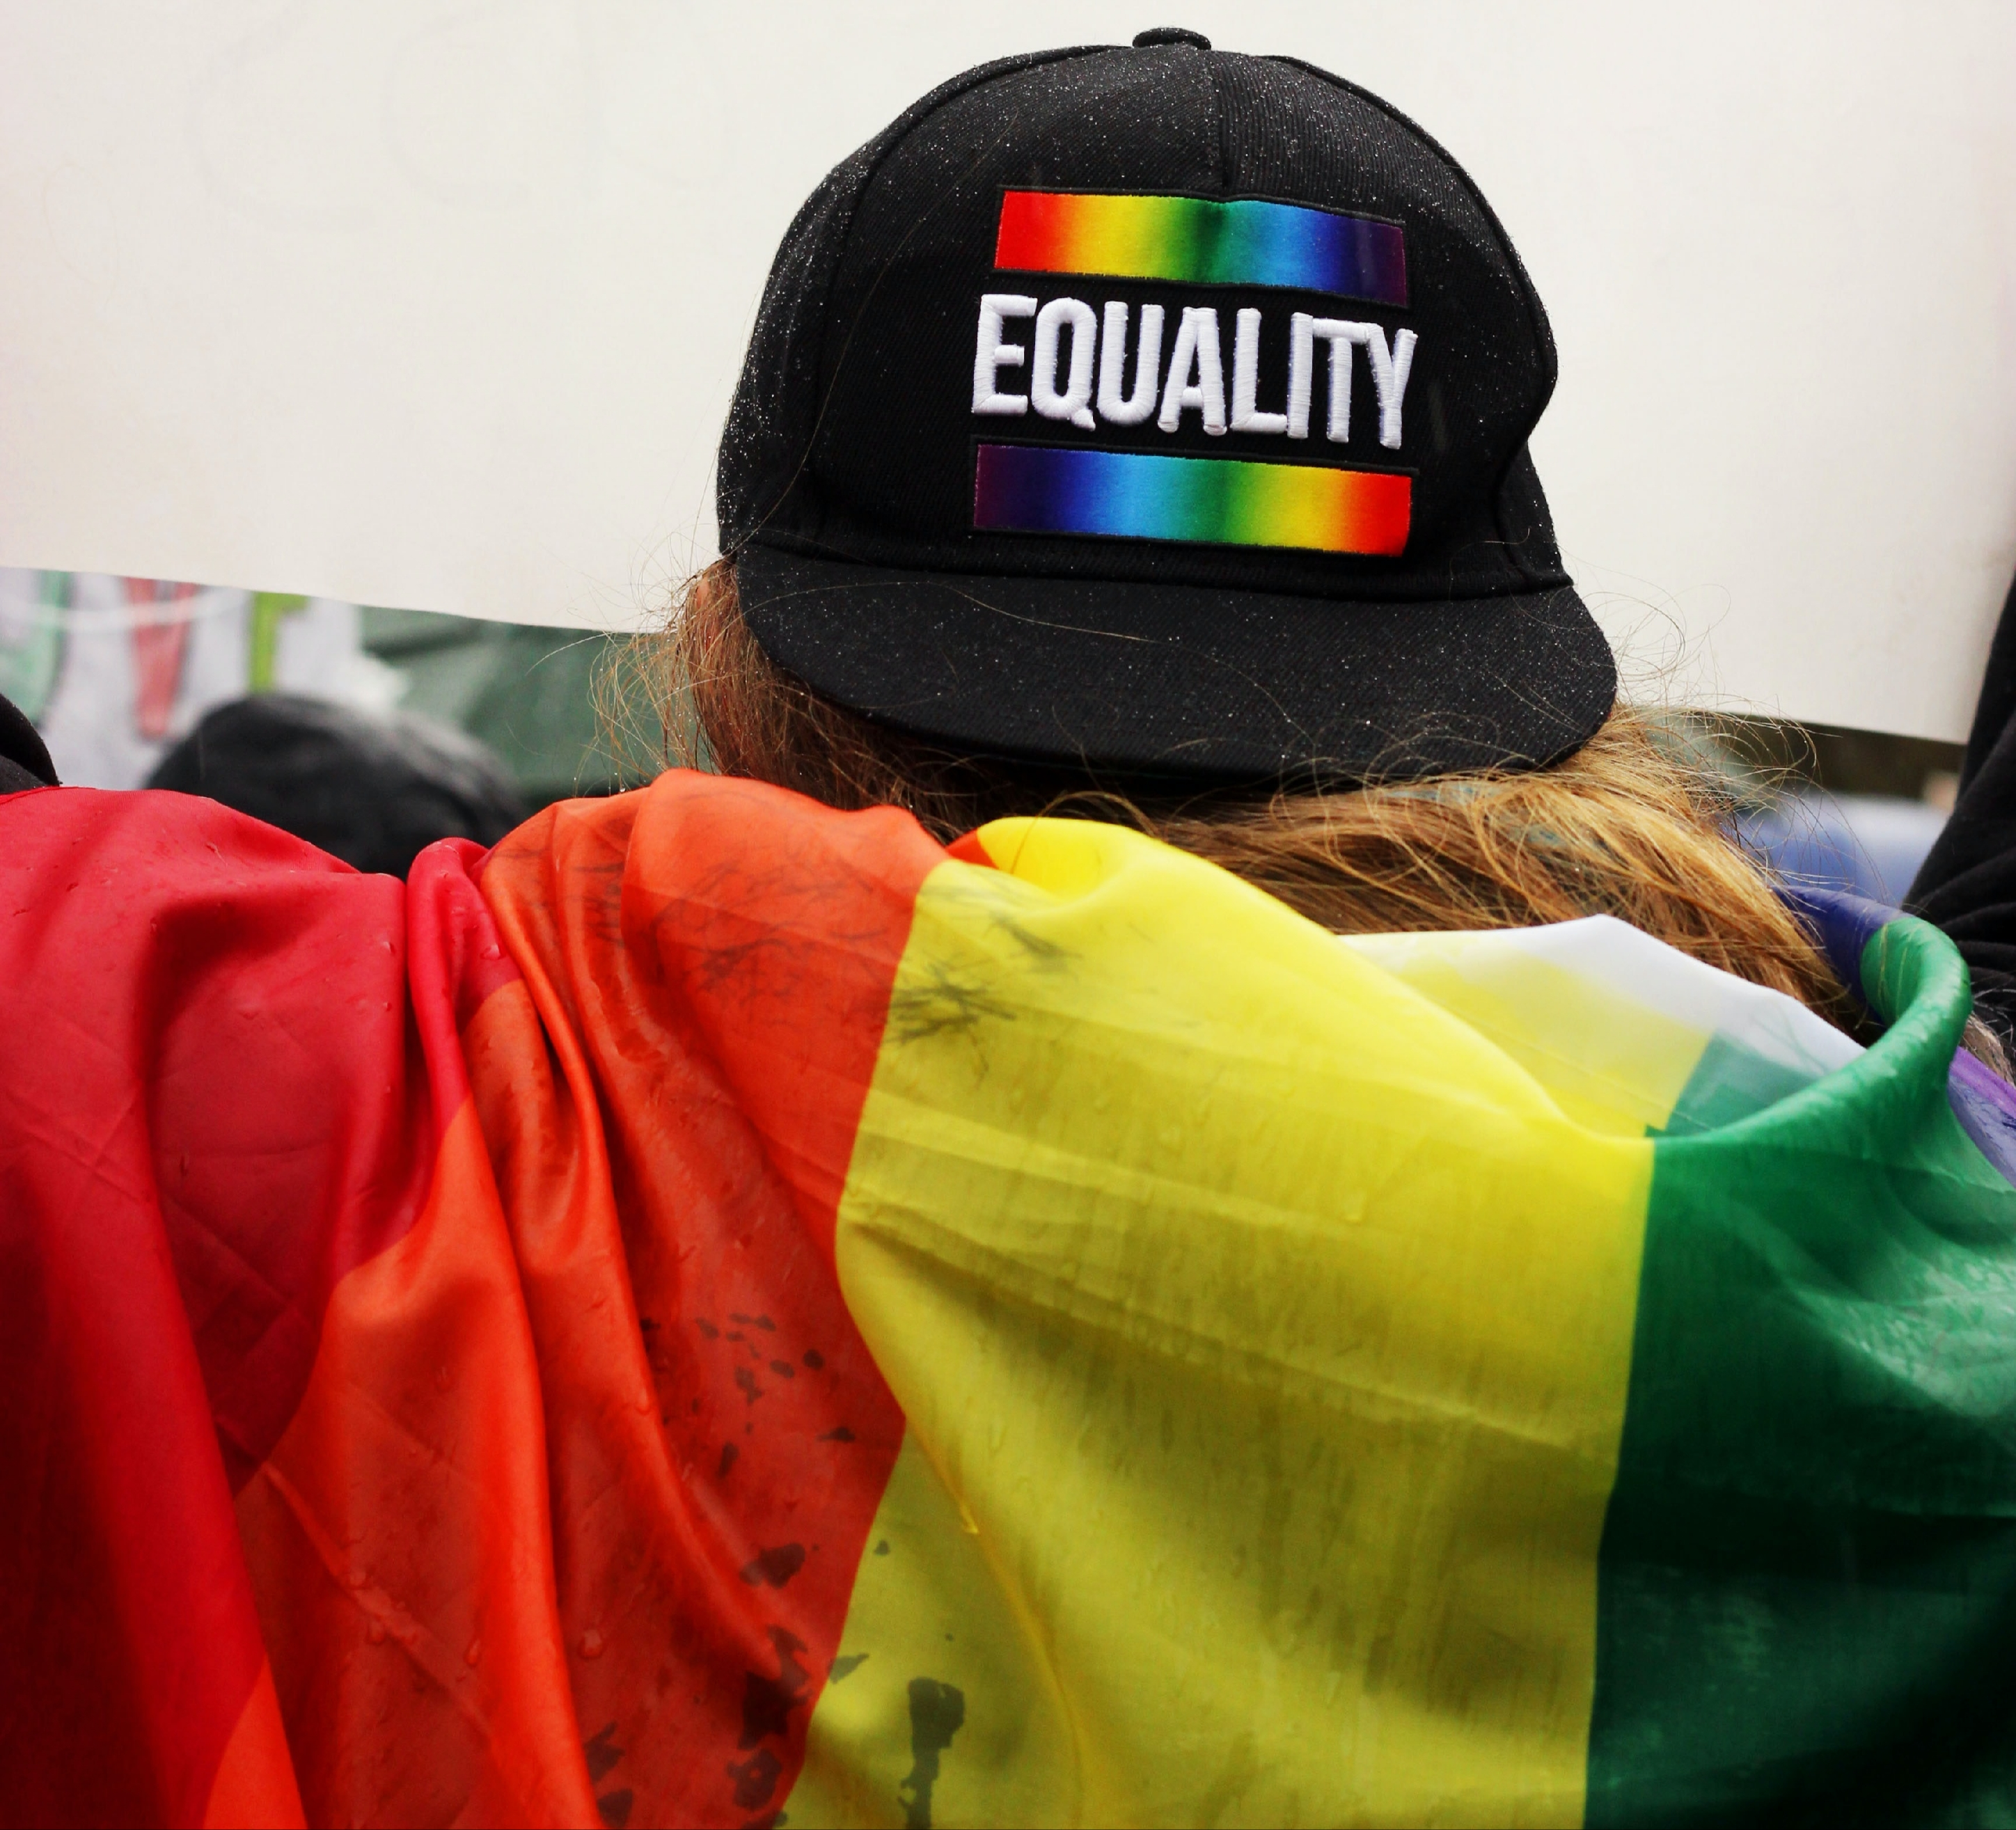 """A person wears a rainbow Pride flag and a backwards cap that reads """"EQUALITY."""""""